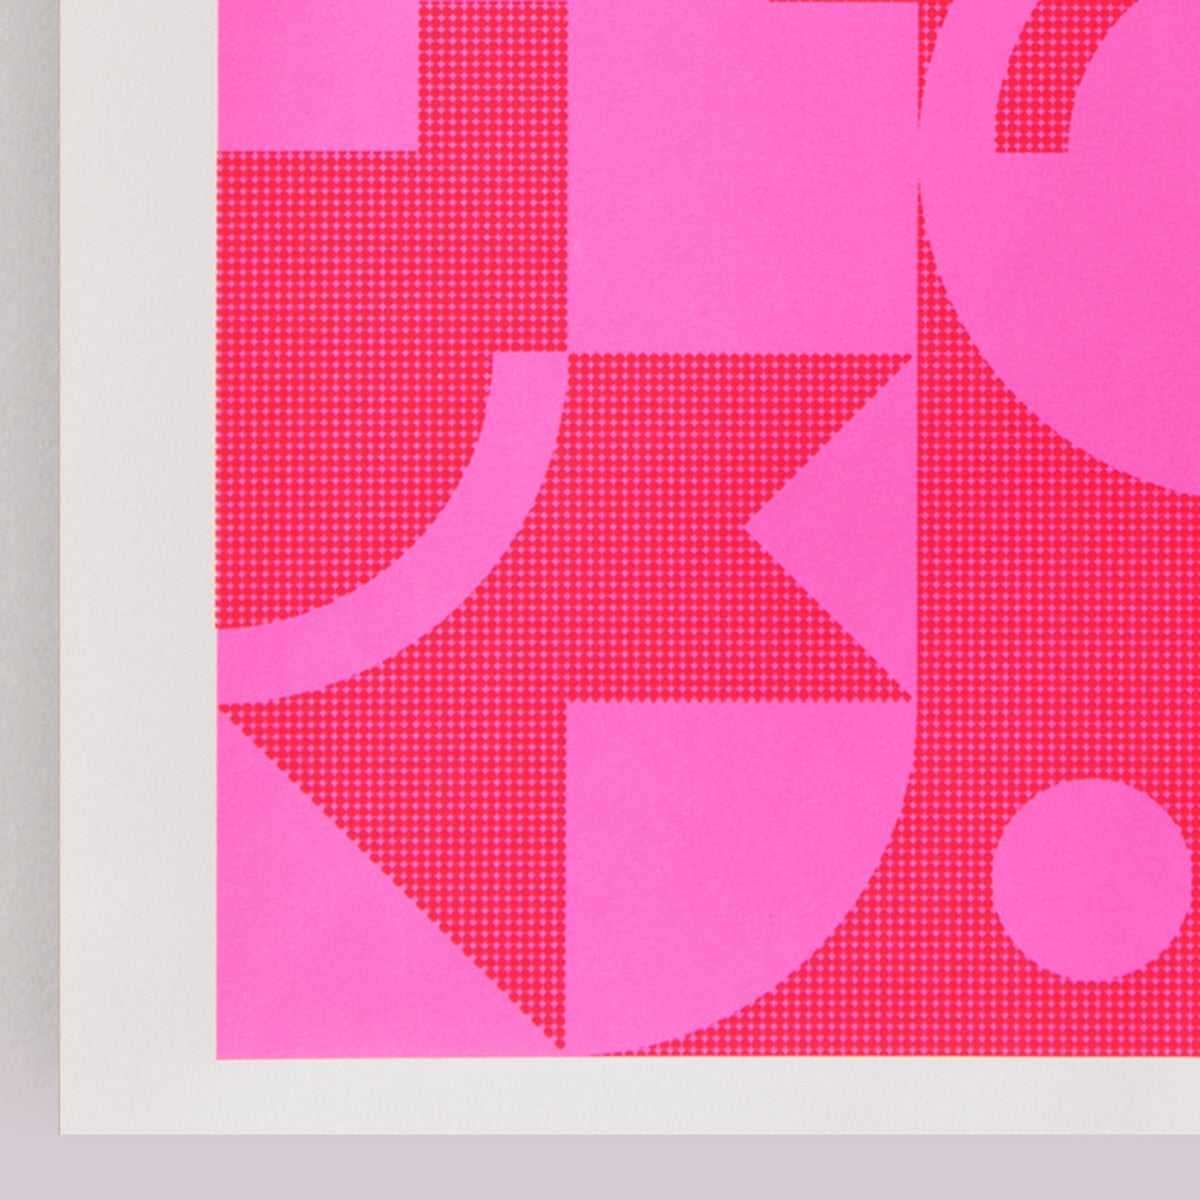 Image of Diptych in Pink 1